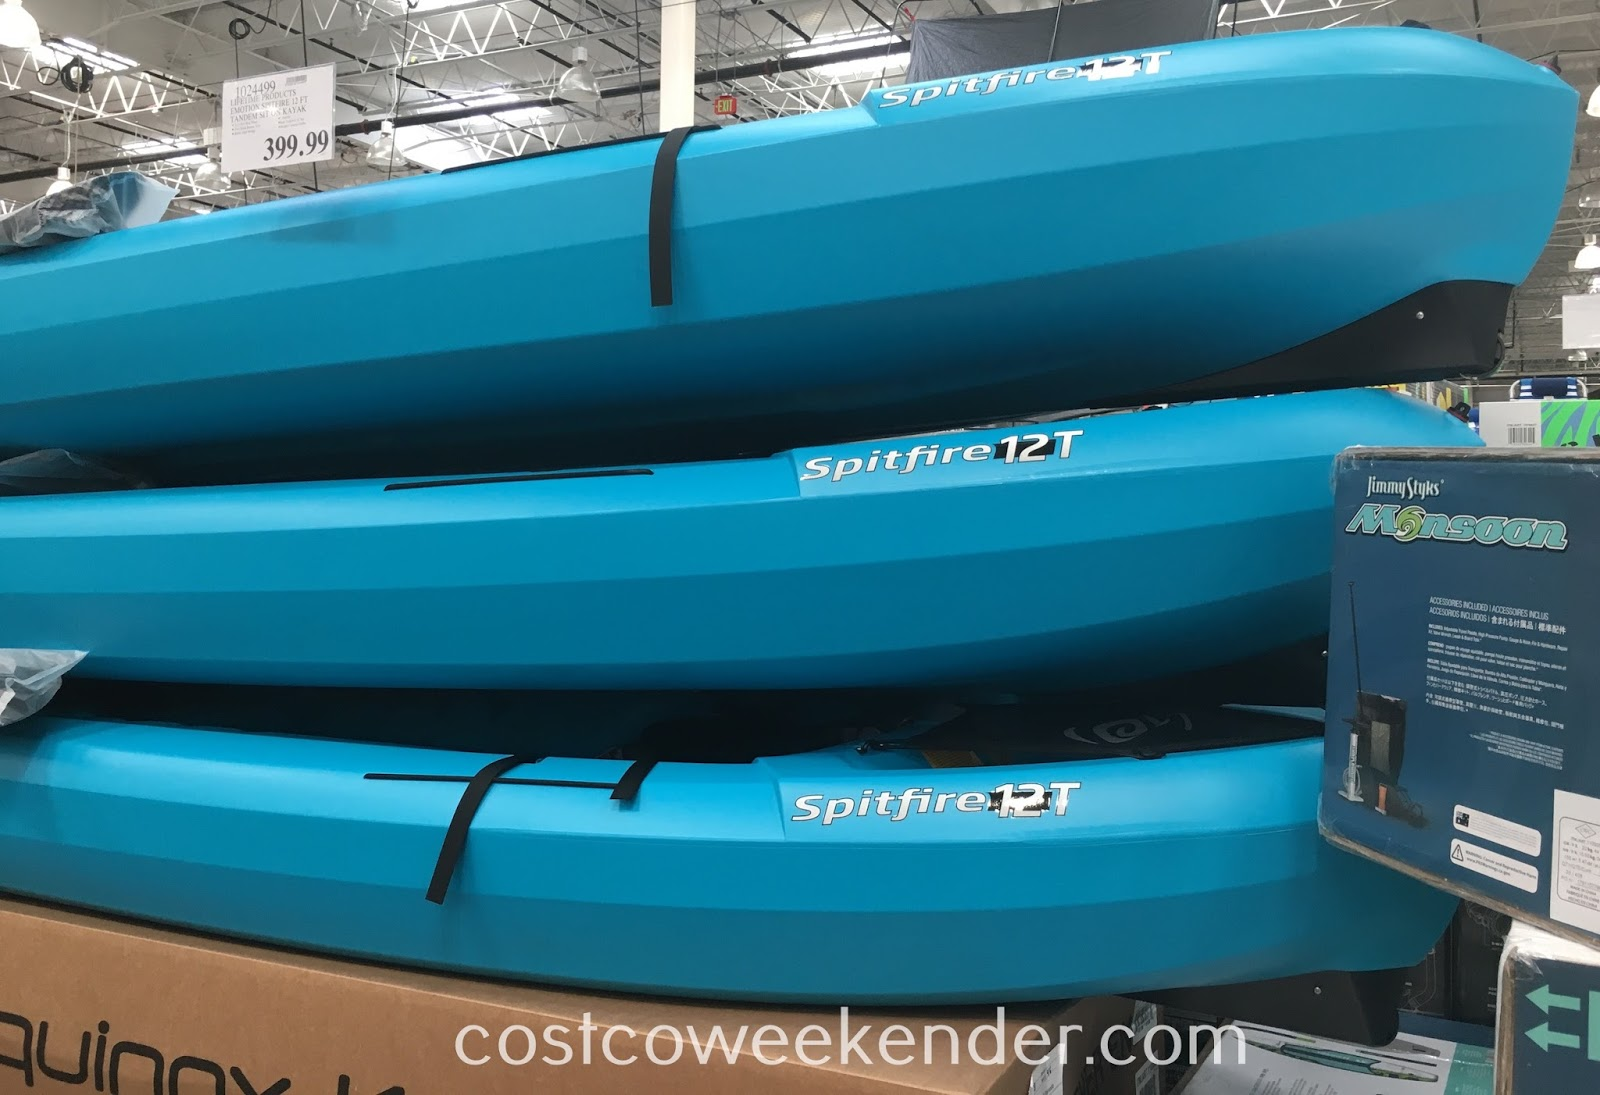 Enjoy paddling in the open water with the Lifetime Products Emotion Spitfire 12T Tandem Kayak